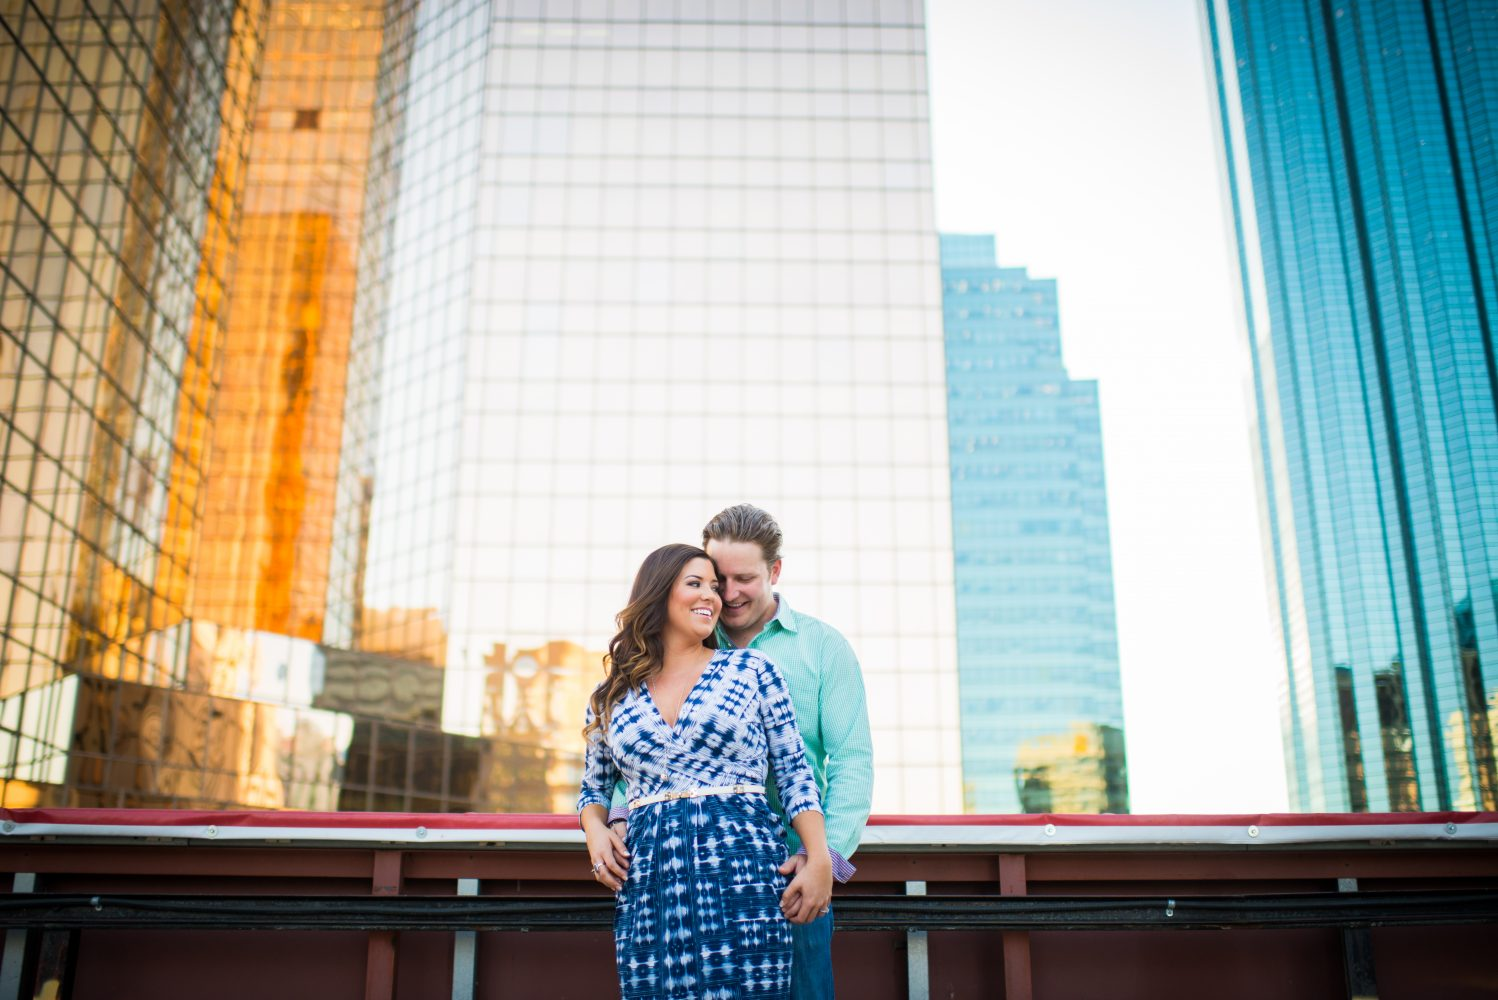 Stunning urban engagement session in the heart of downtown edmonton | 3haus Photographics